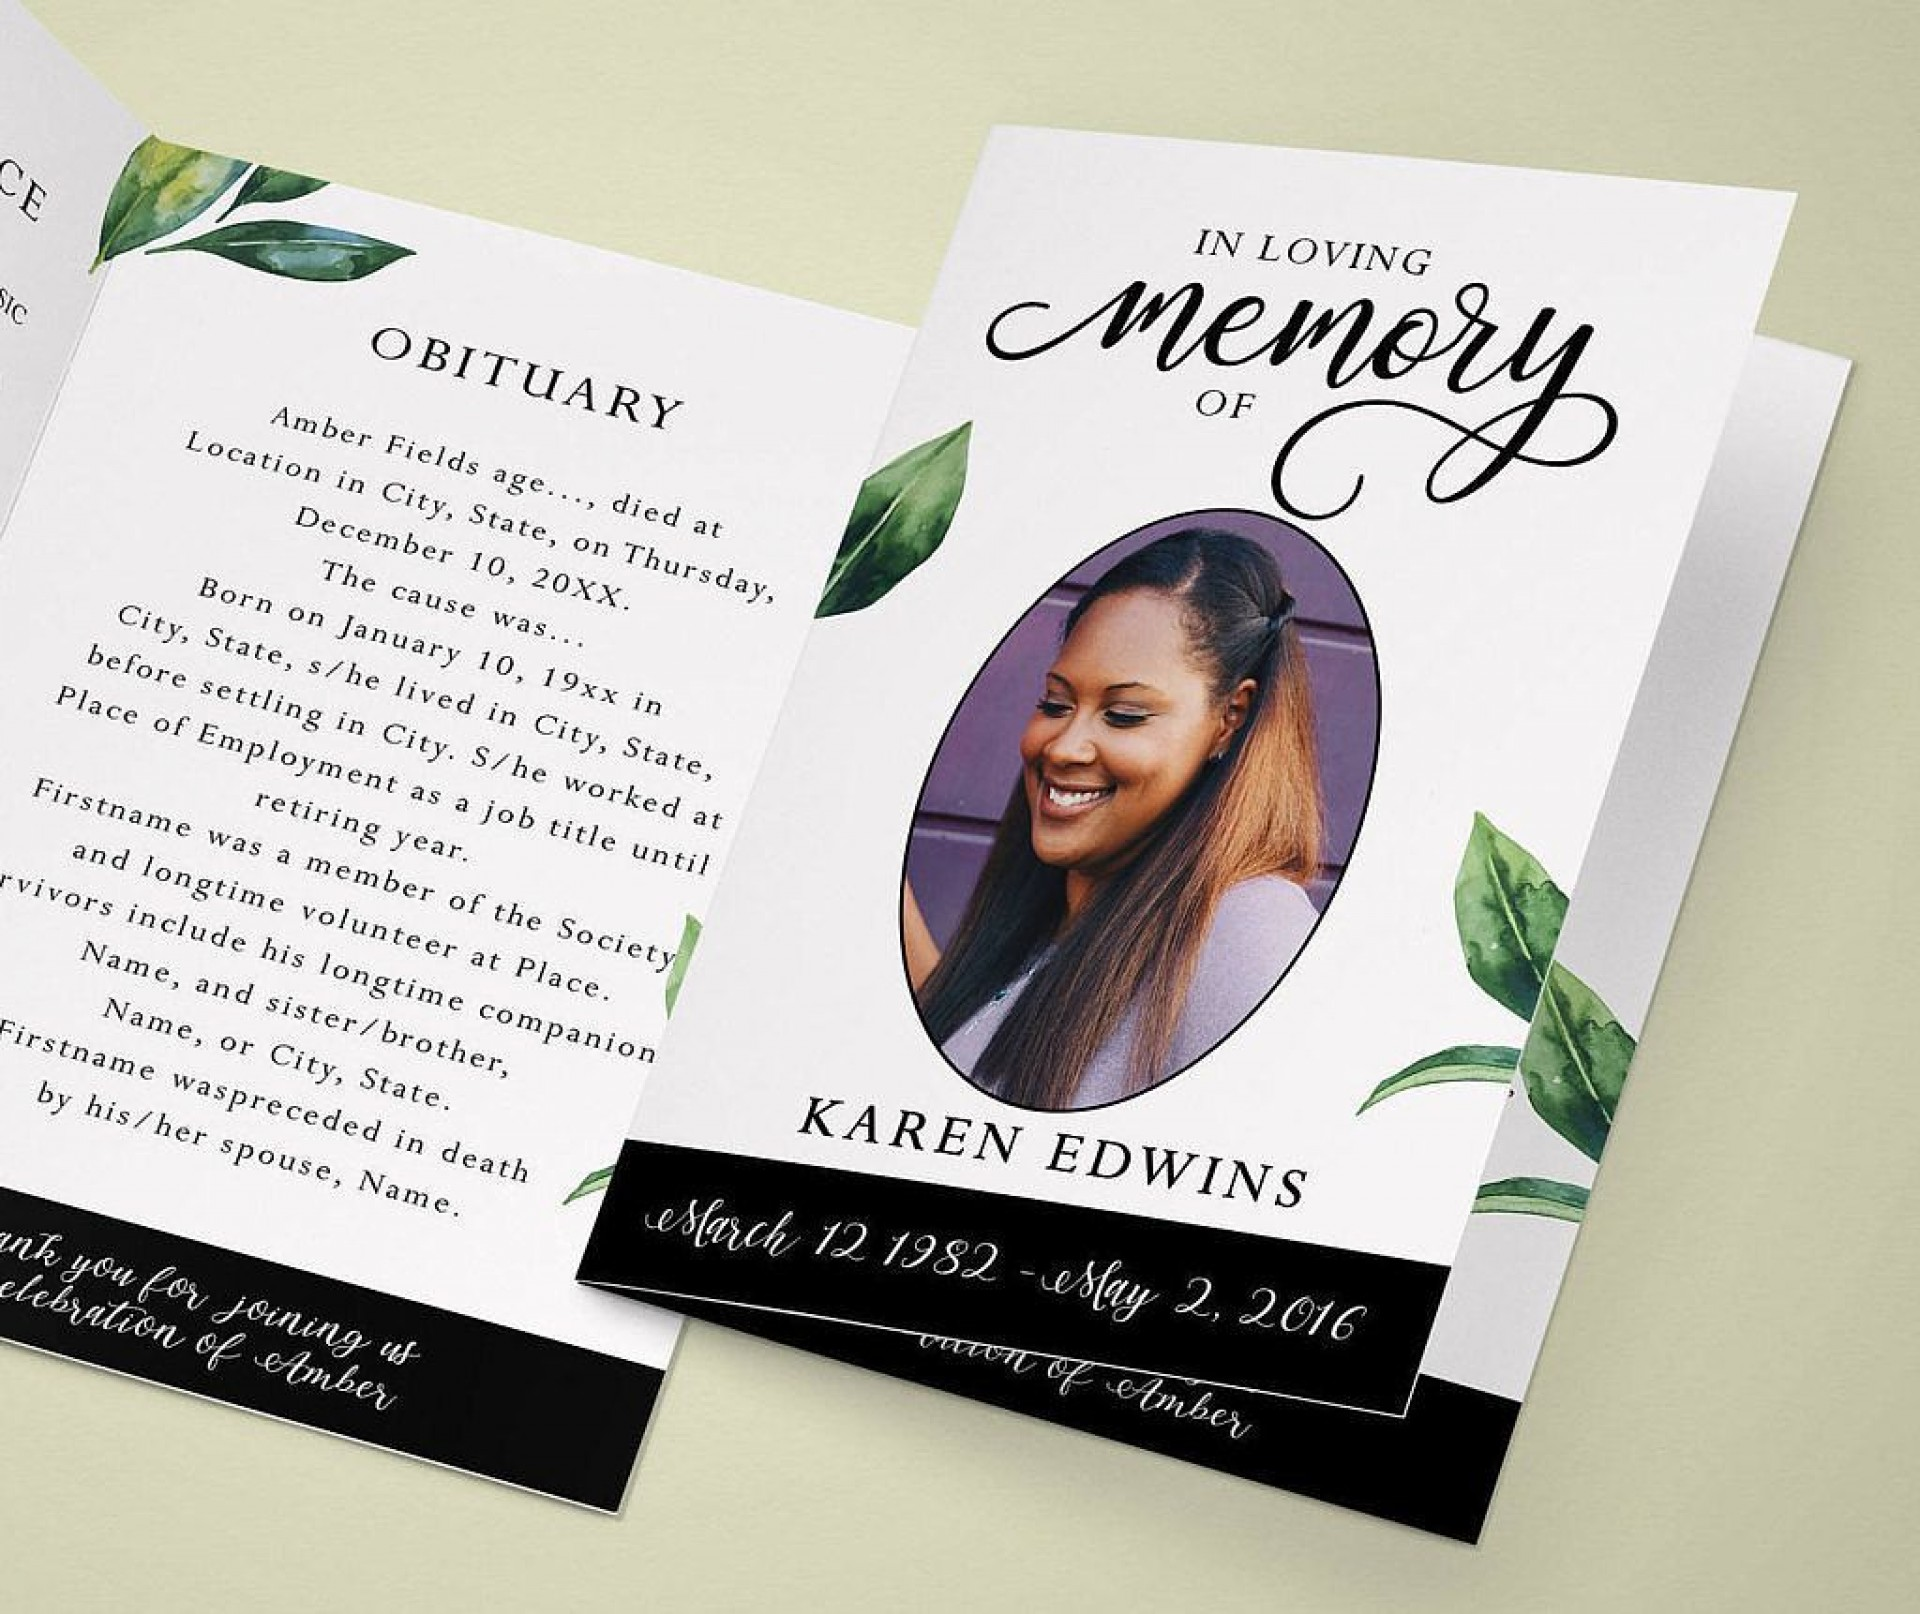 003 Surprising In Loving Memory Template Inspiration  Free Powerpoint1920